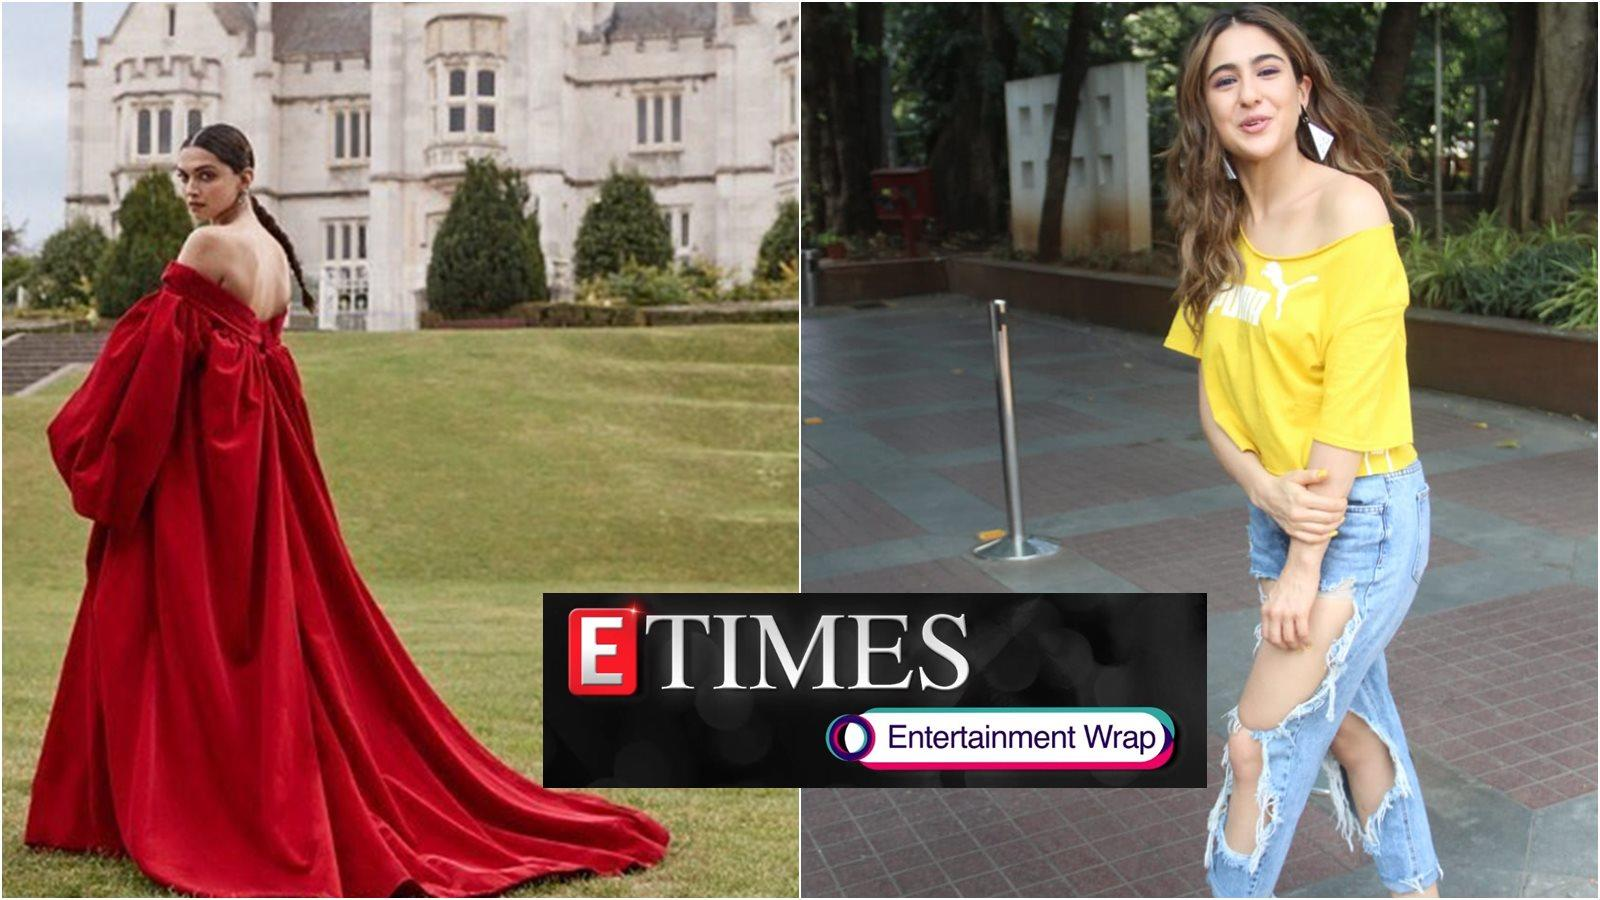 ranveer-singh-hilariously-decodes-wife-deepika-padukones-different-expressions-in-her-new-pics-sara-ali-khan-looks-bright-as-the-sun-in-yellow-off-shoulder-top-and-more-